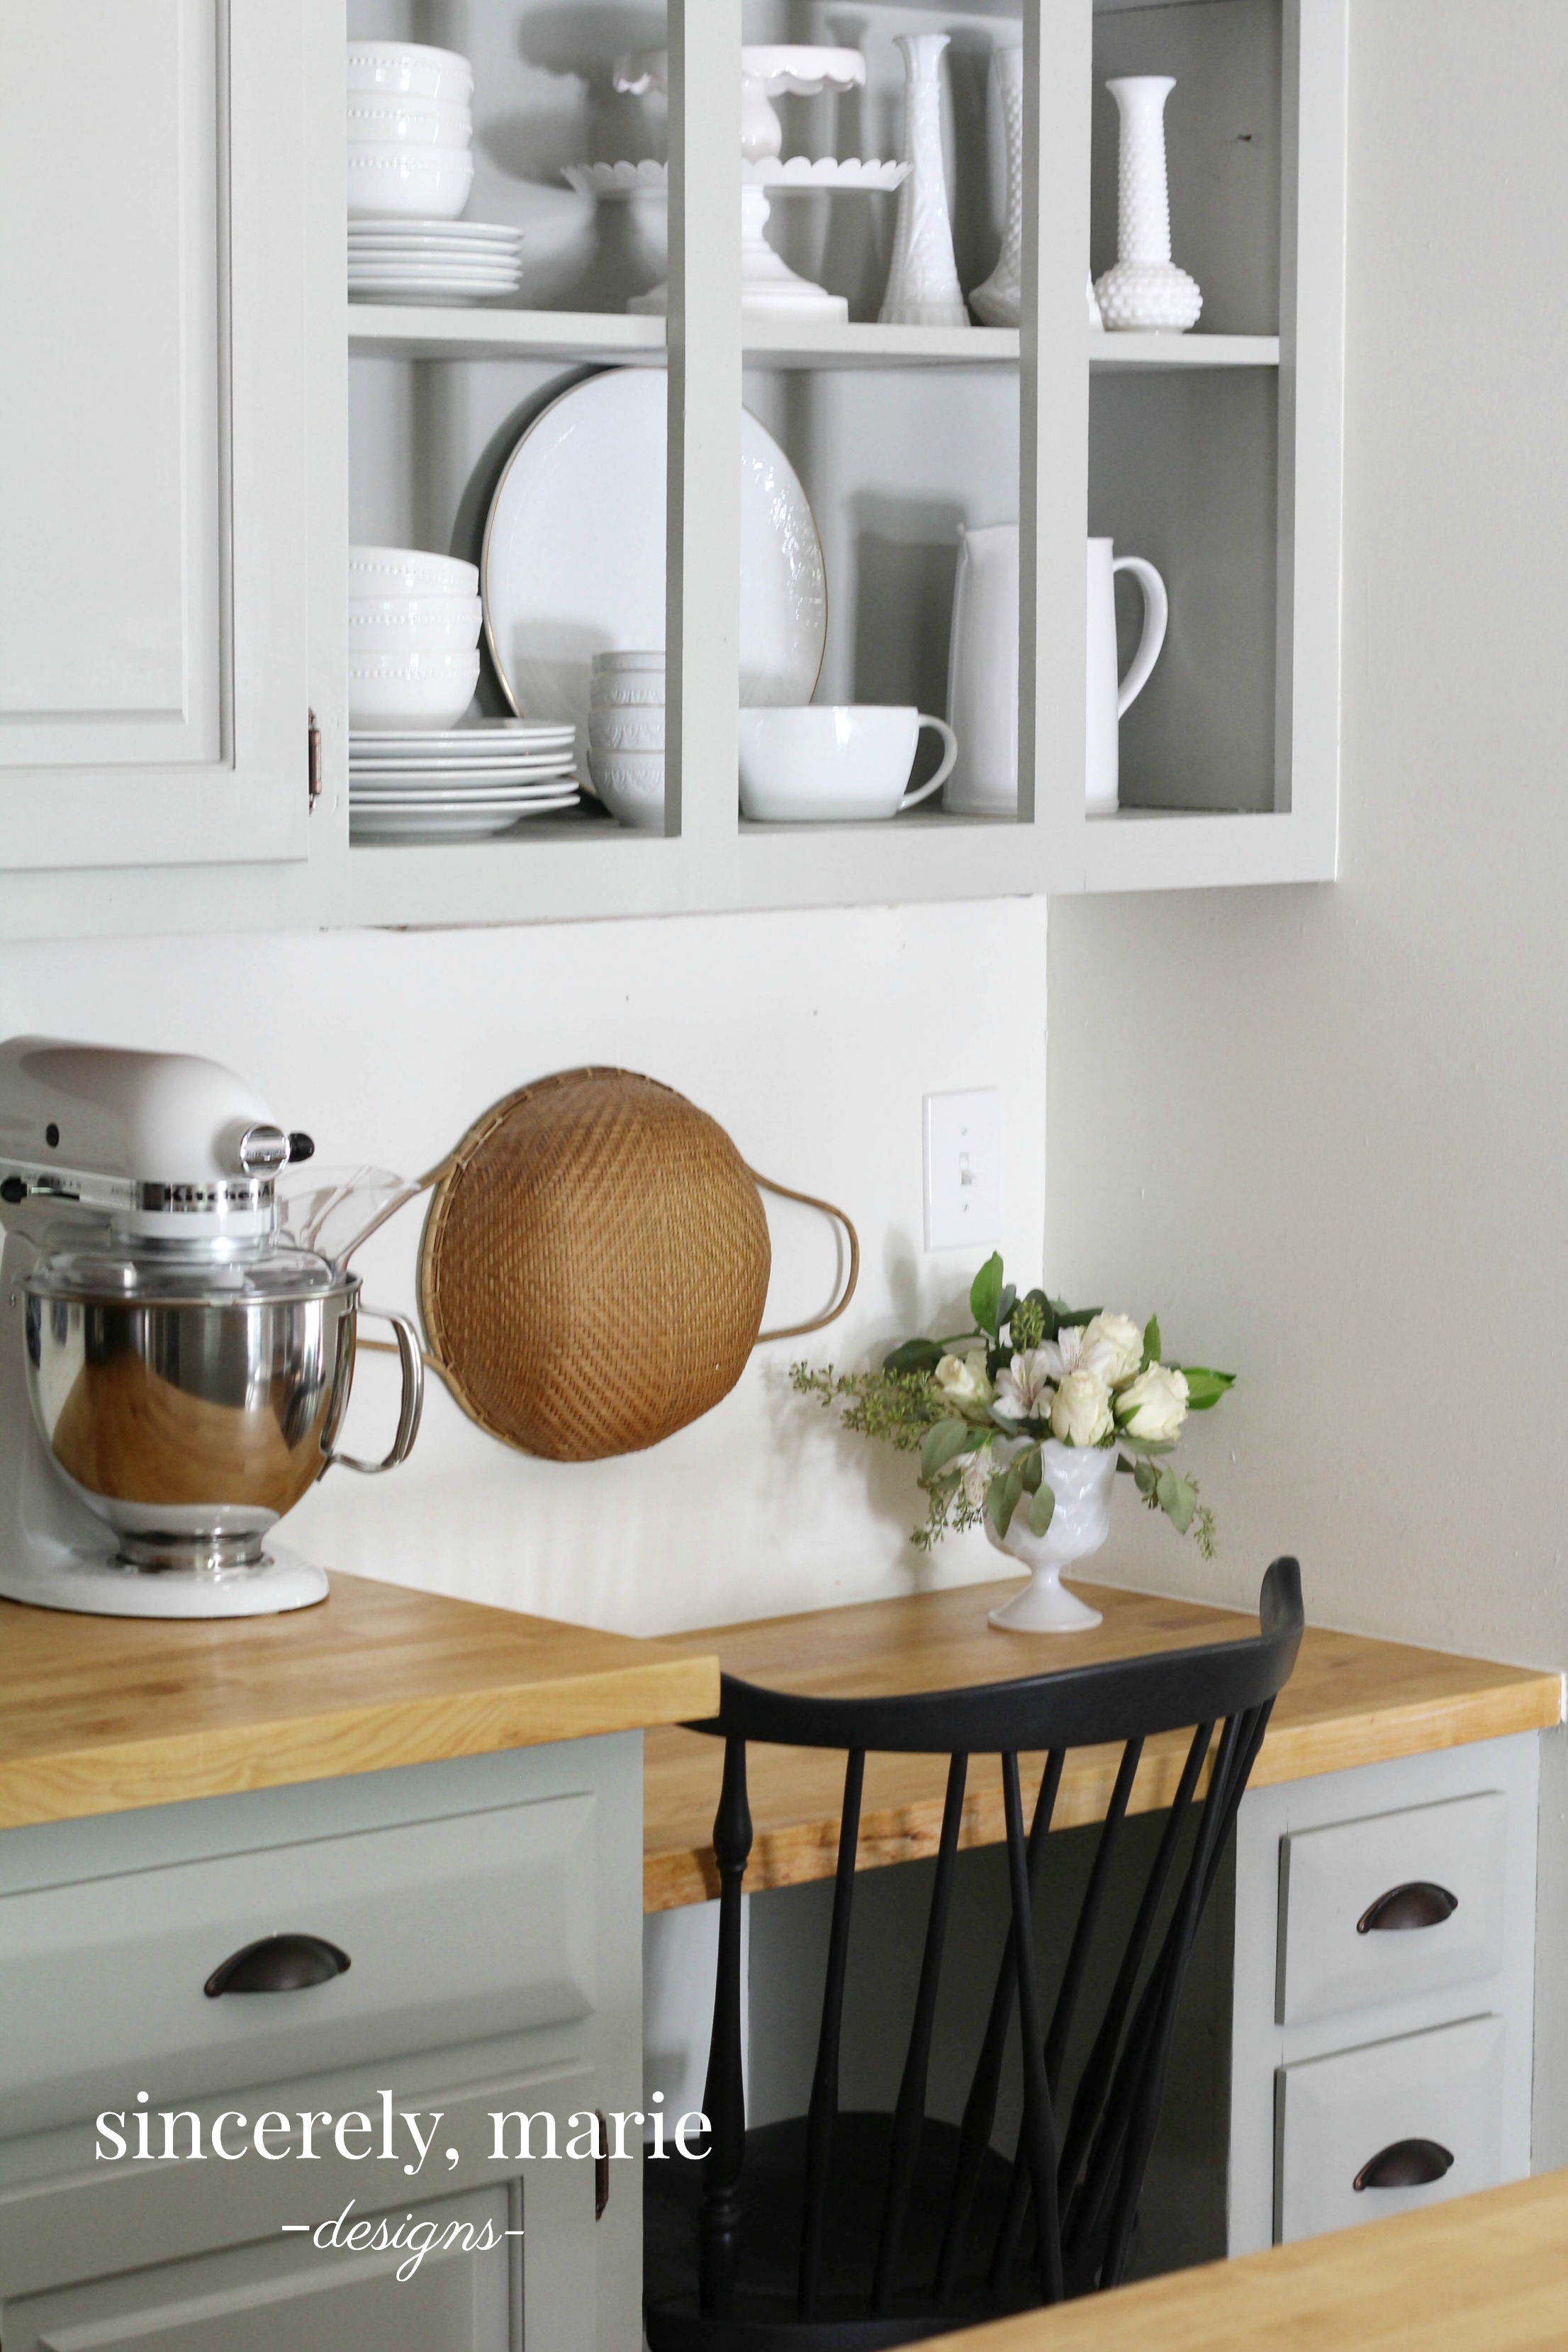 Kitchen Cabinets vs. Open Shelving - Sincerely, Marie Designs